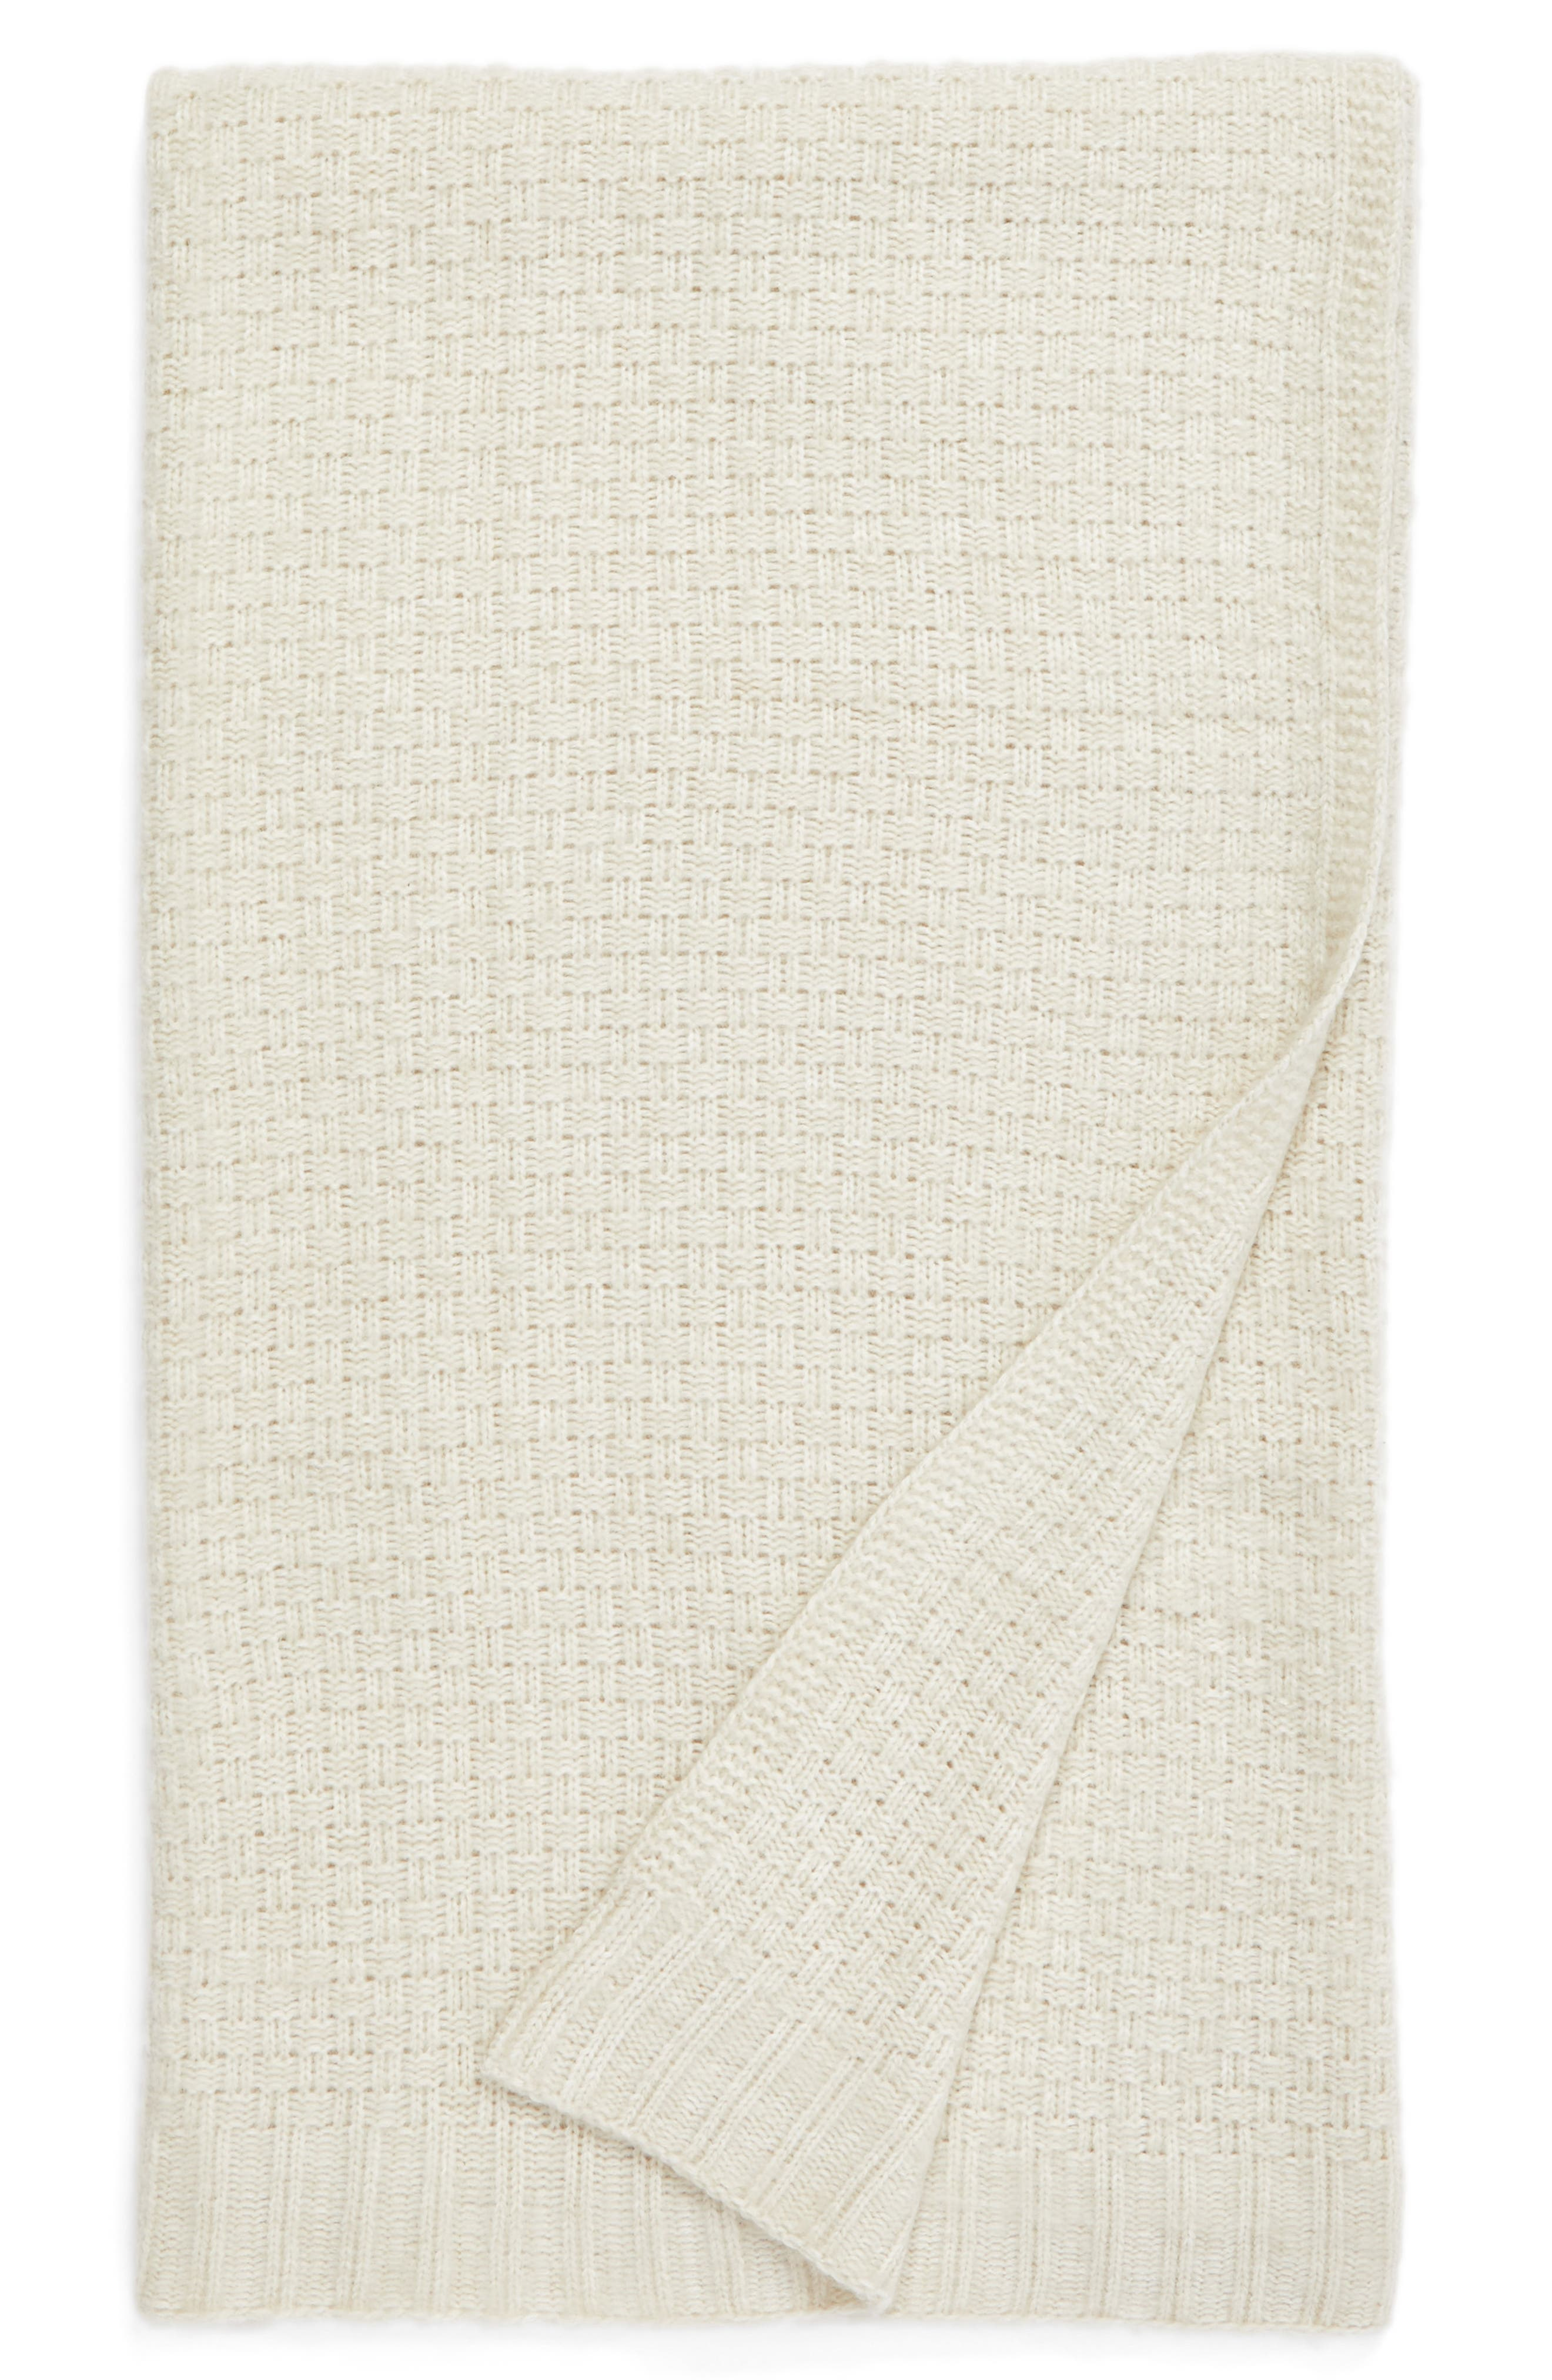 Brushed Seed Stitch Throw Blanket,                         Main,                         color, Beige Oatmeal Heather